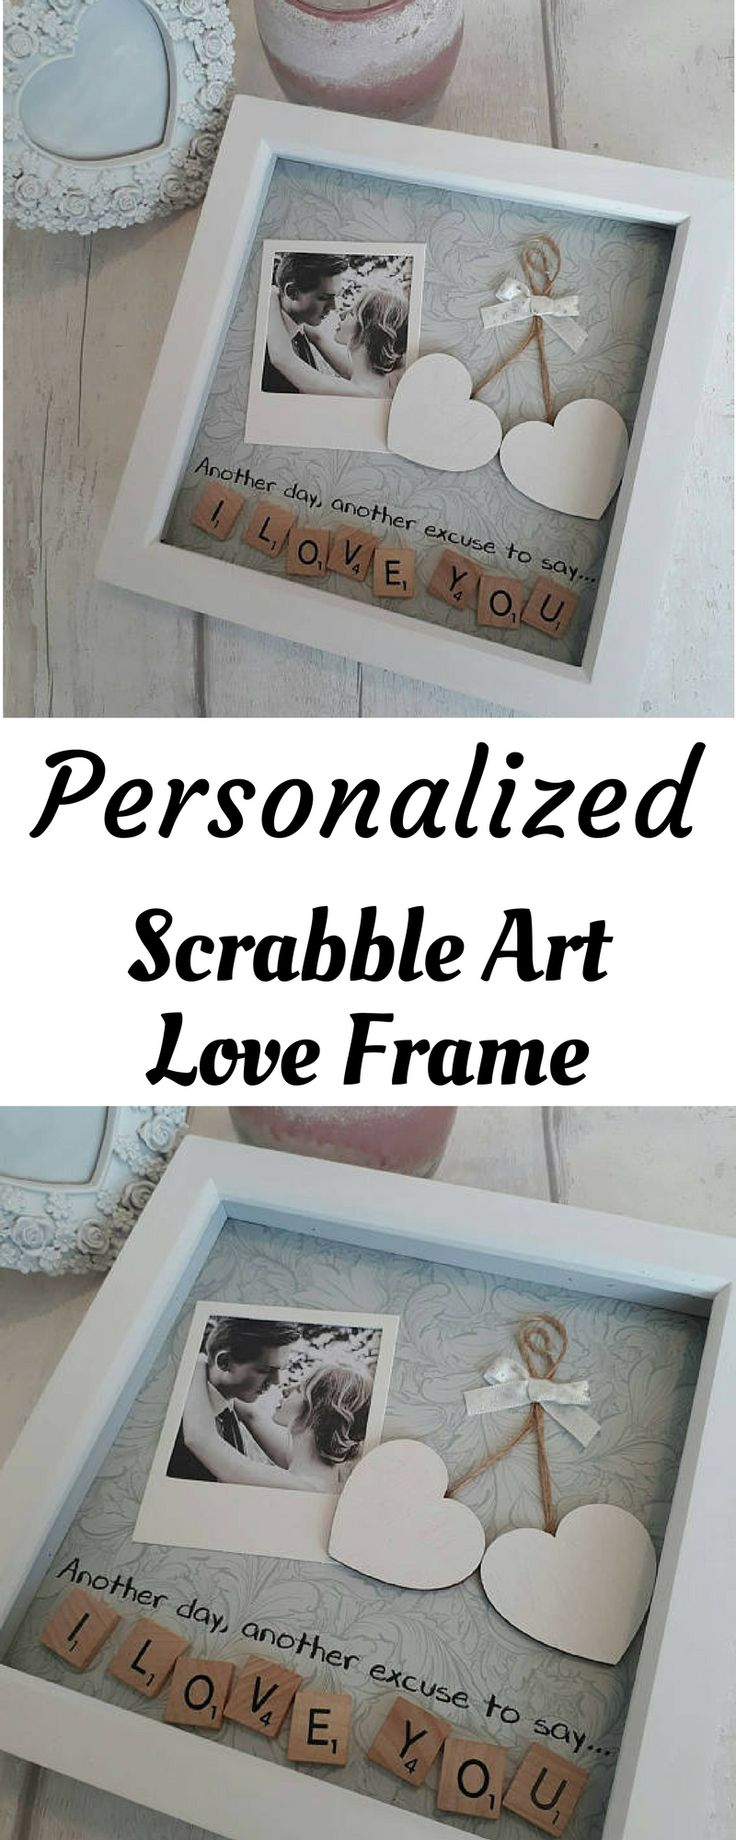 Valentines gift, Anniversary Gift Partner, Personalized Scrabble Art Frame, Present For Husband, Gift For Wife, Gift For Boyfriend